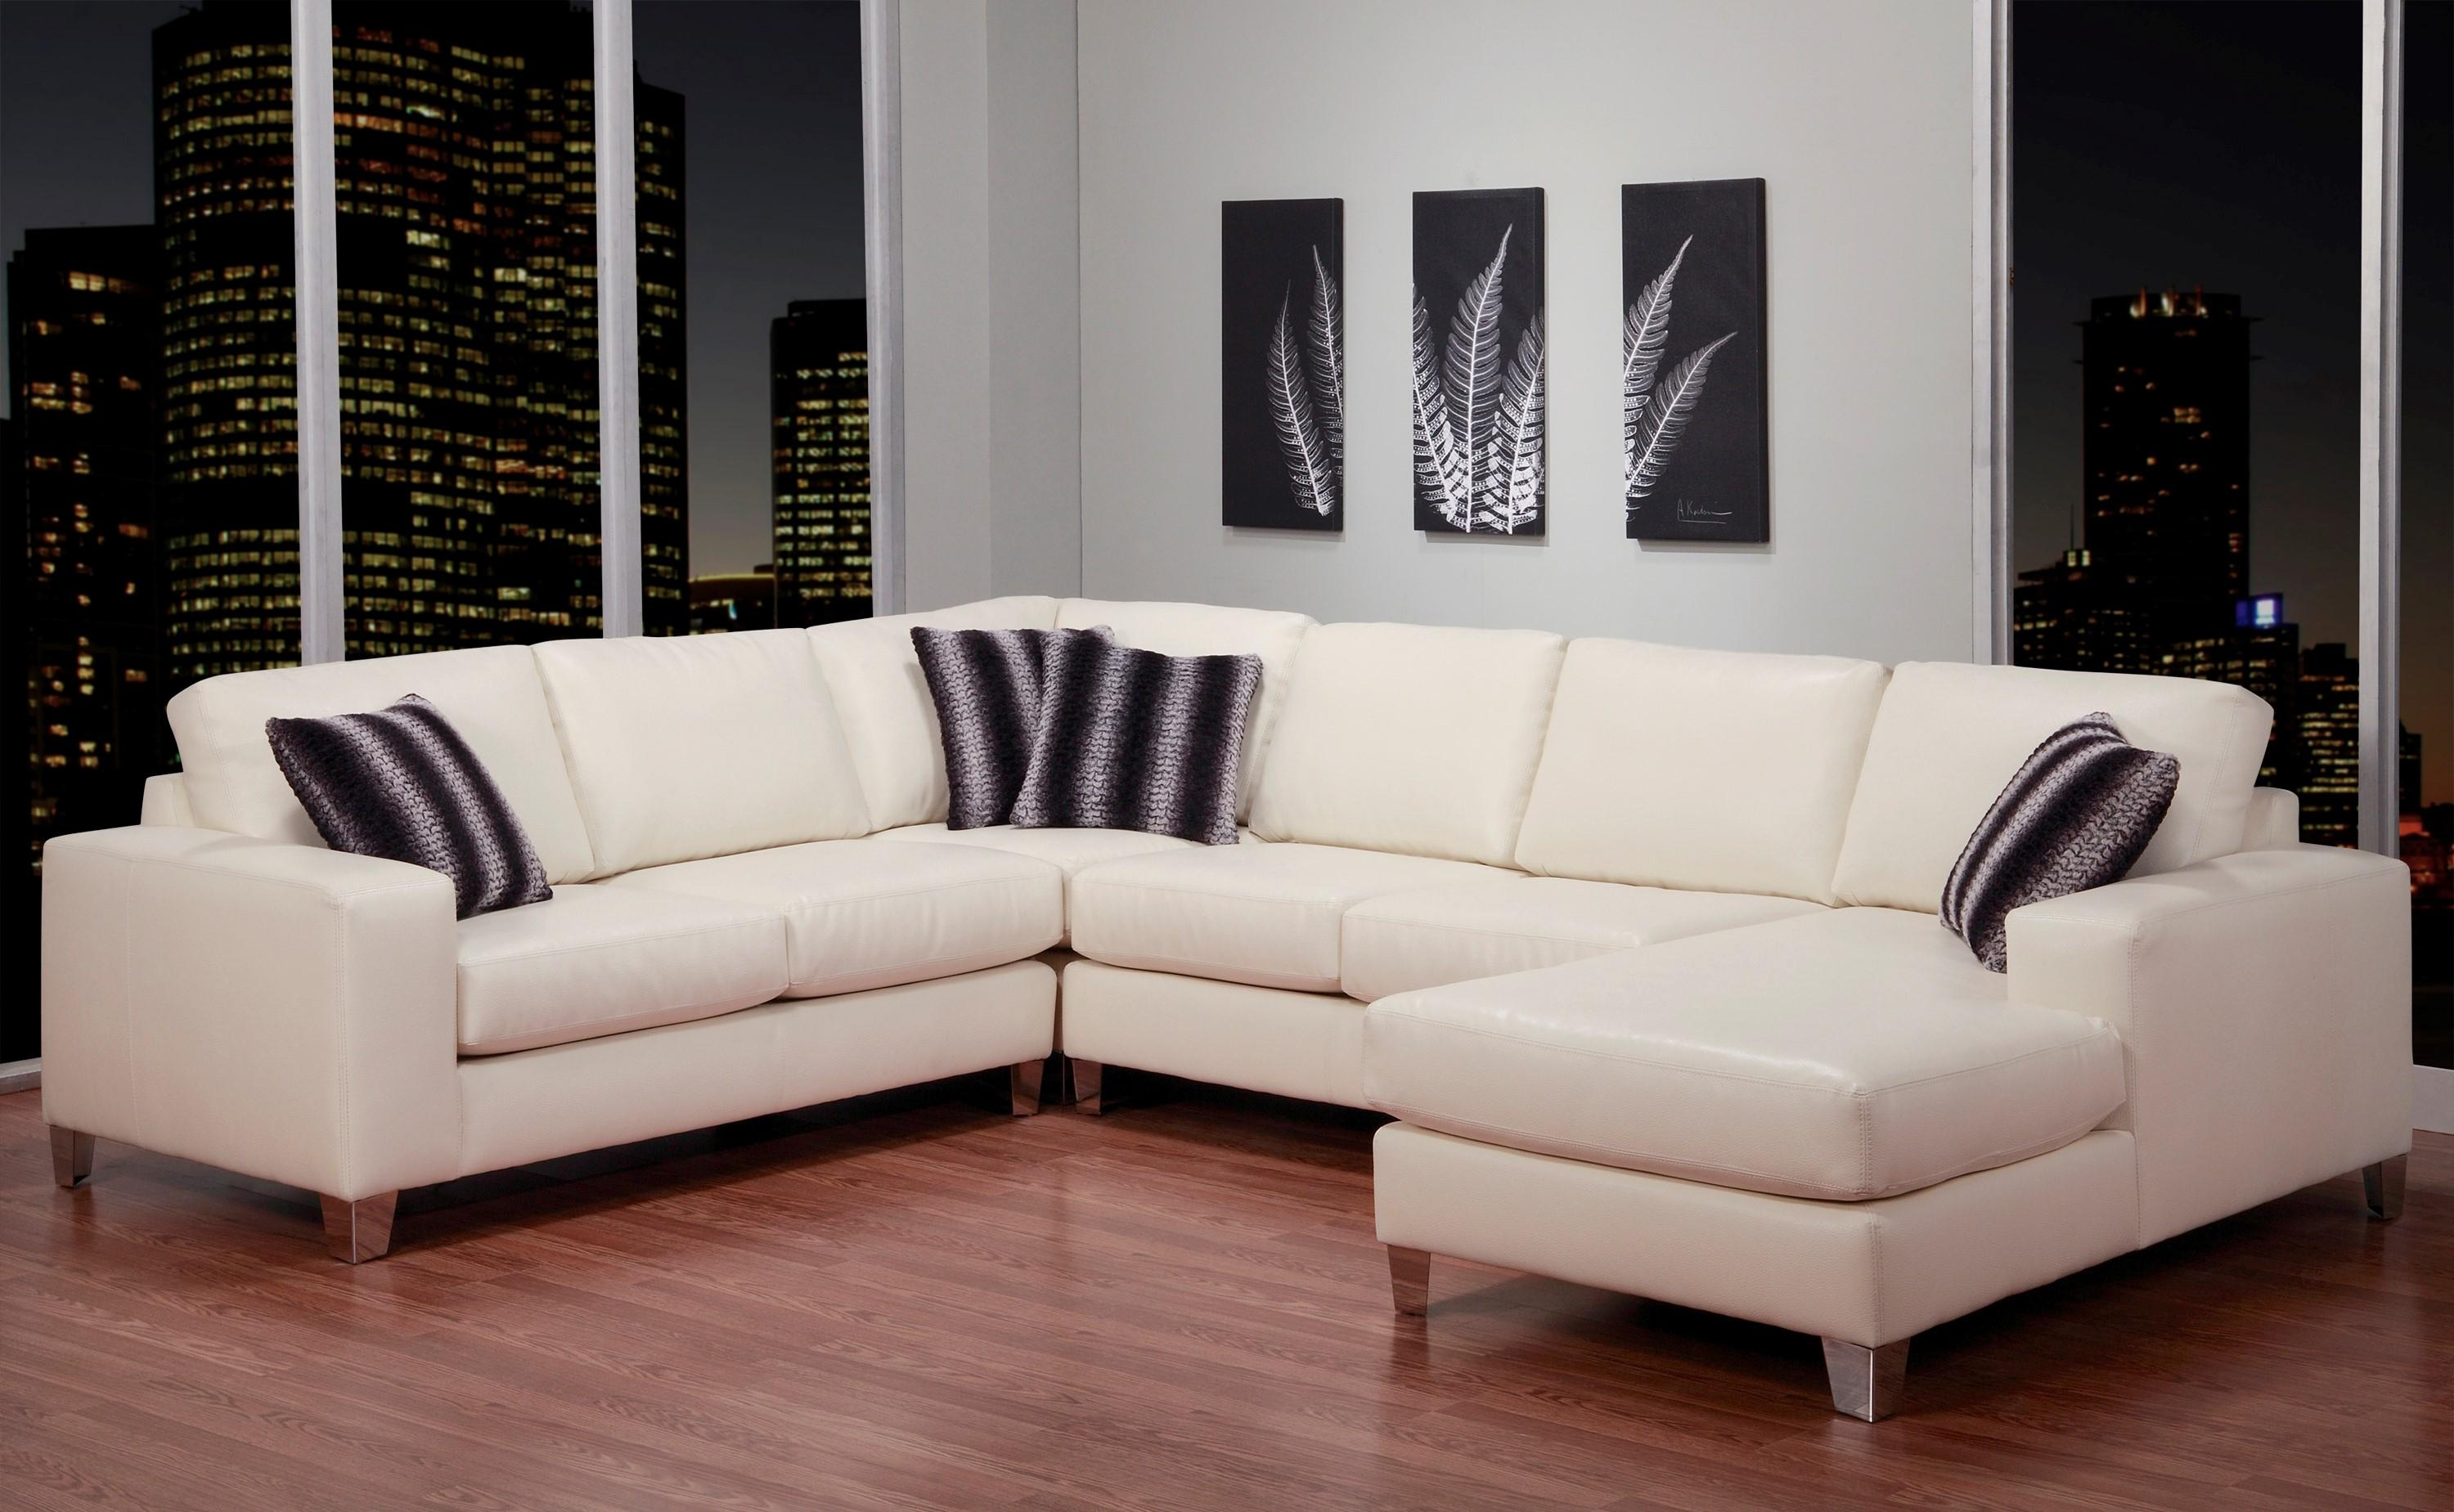 20 Choices Of Leather Sectional Sofas Toronto Sofa Ideas